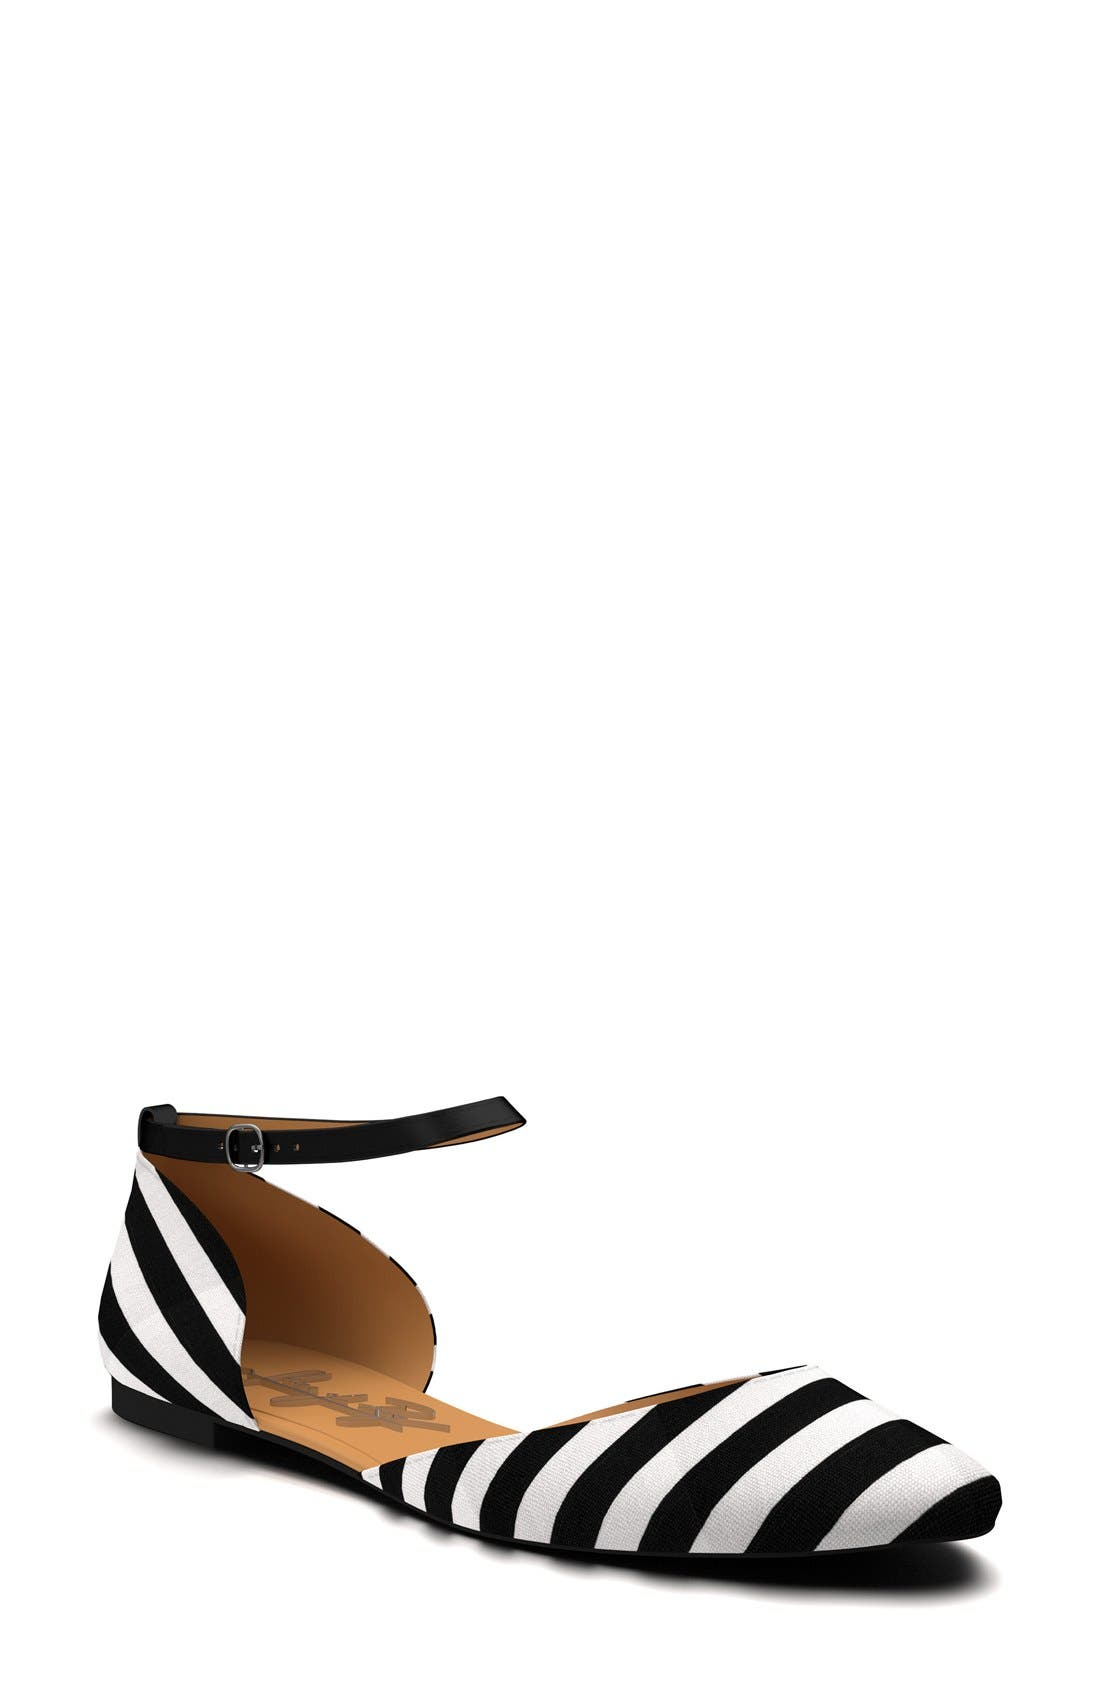 Alternate Image 1 Selected - Shoes of Prey Ankle Strap d'Orsay Flat (Women)